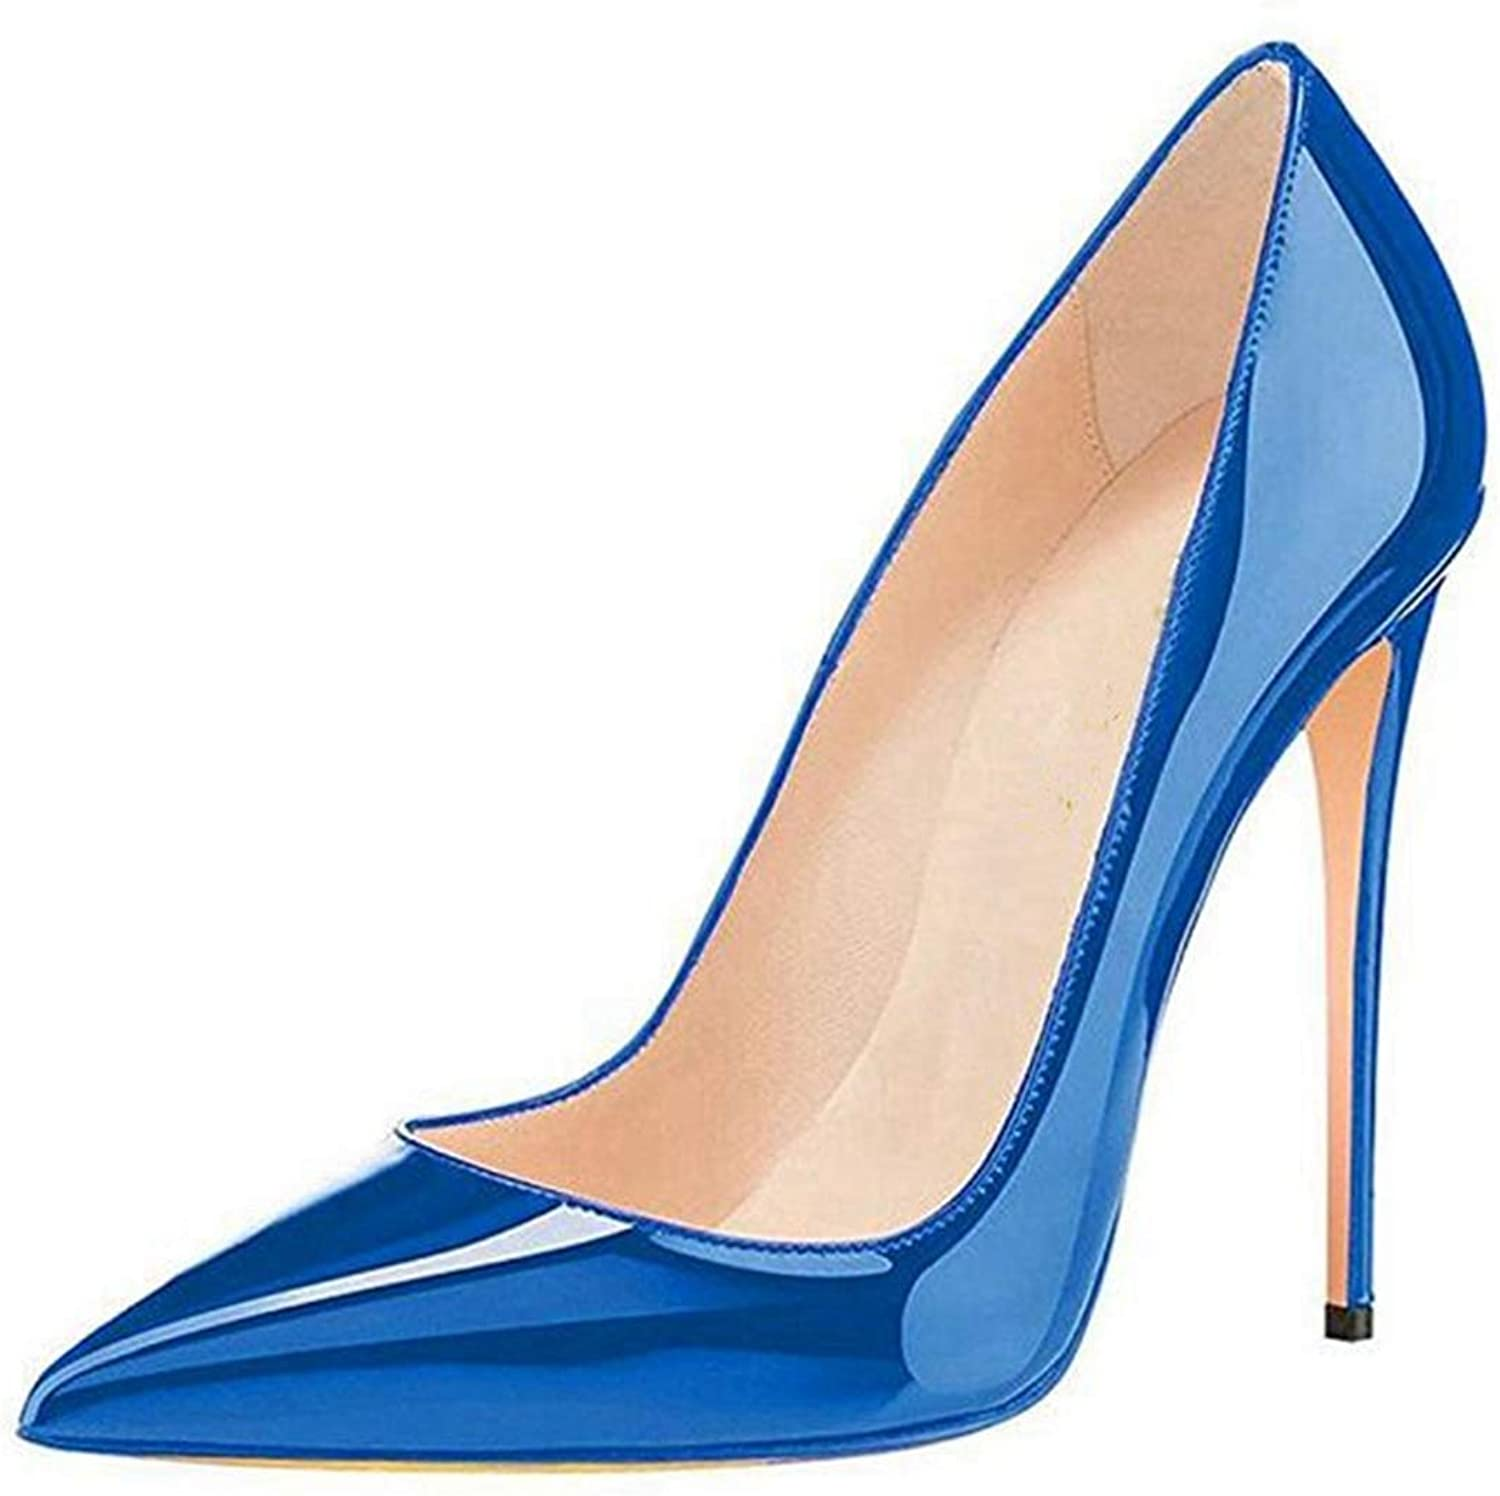 Ladies High Heel shoes bluee Elegant Heeled Sandals Women Pointed Toe Slip-on Sandal